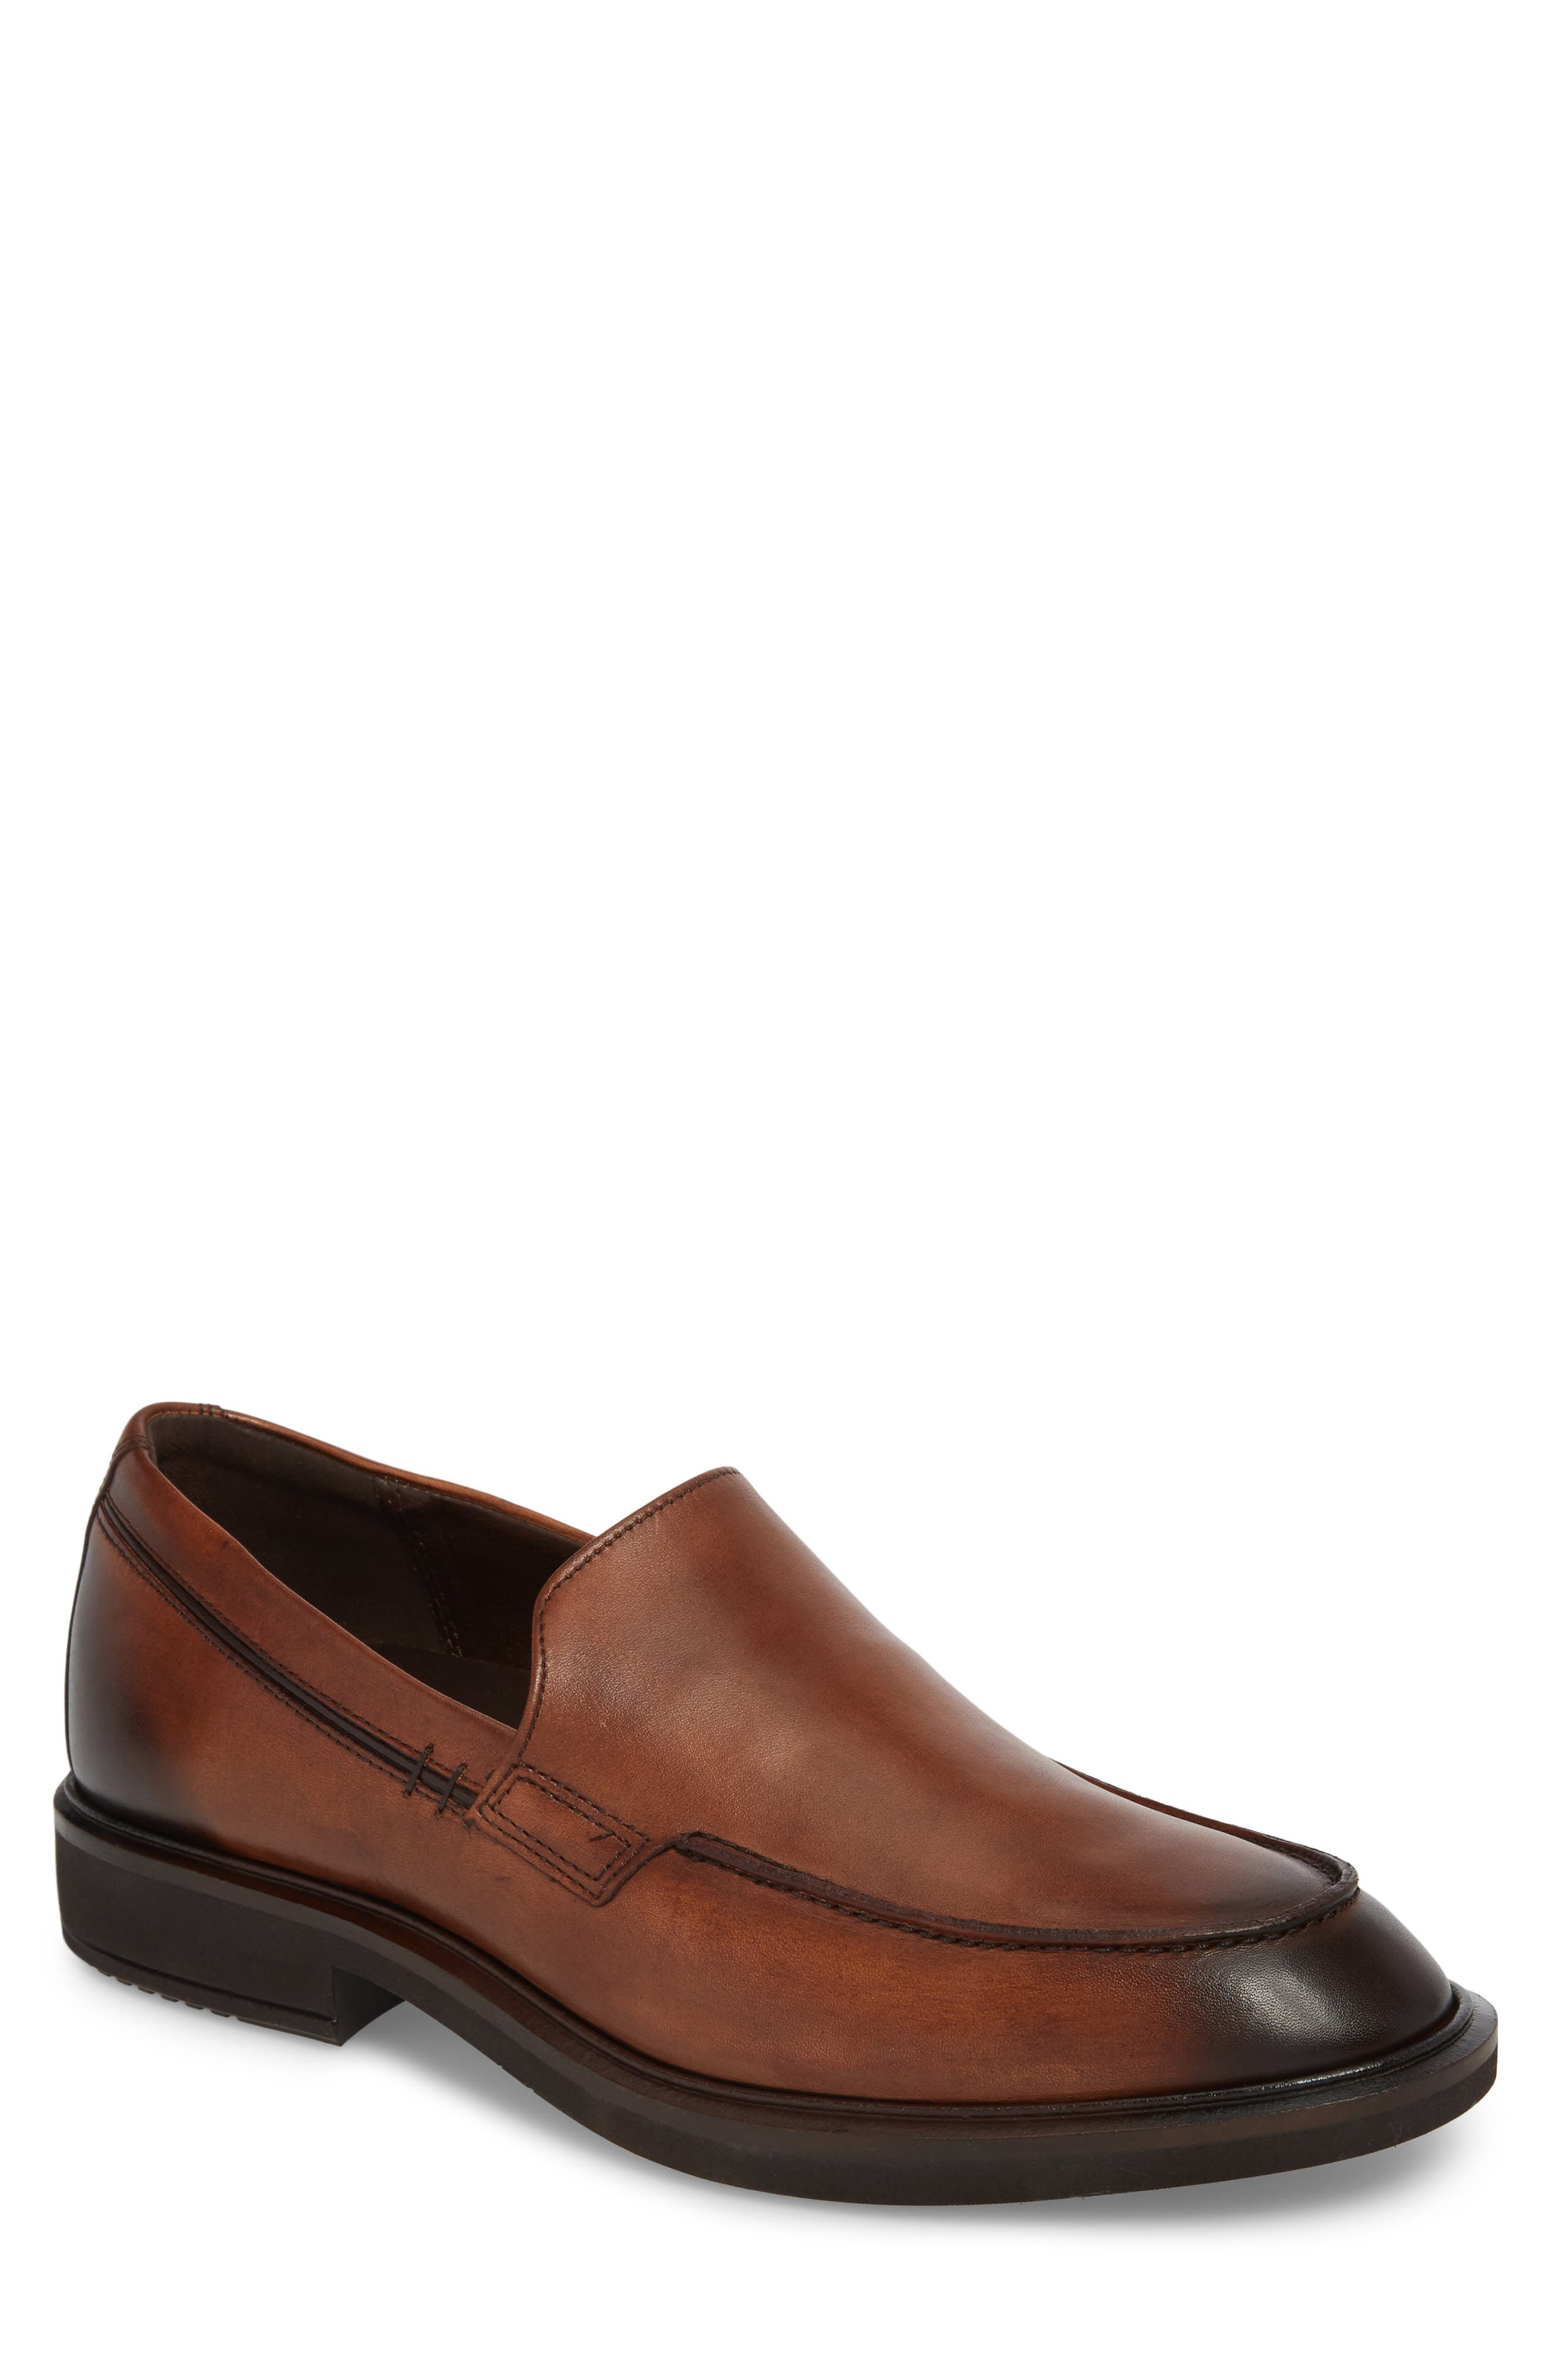 Main Image - ECCO Vitrus II Apron Toe Loafer (Men)